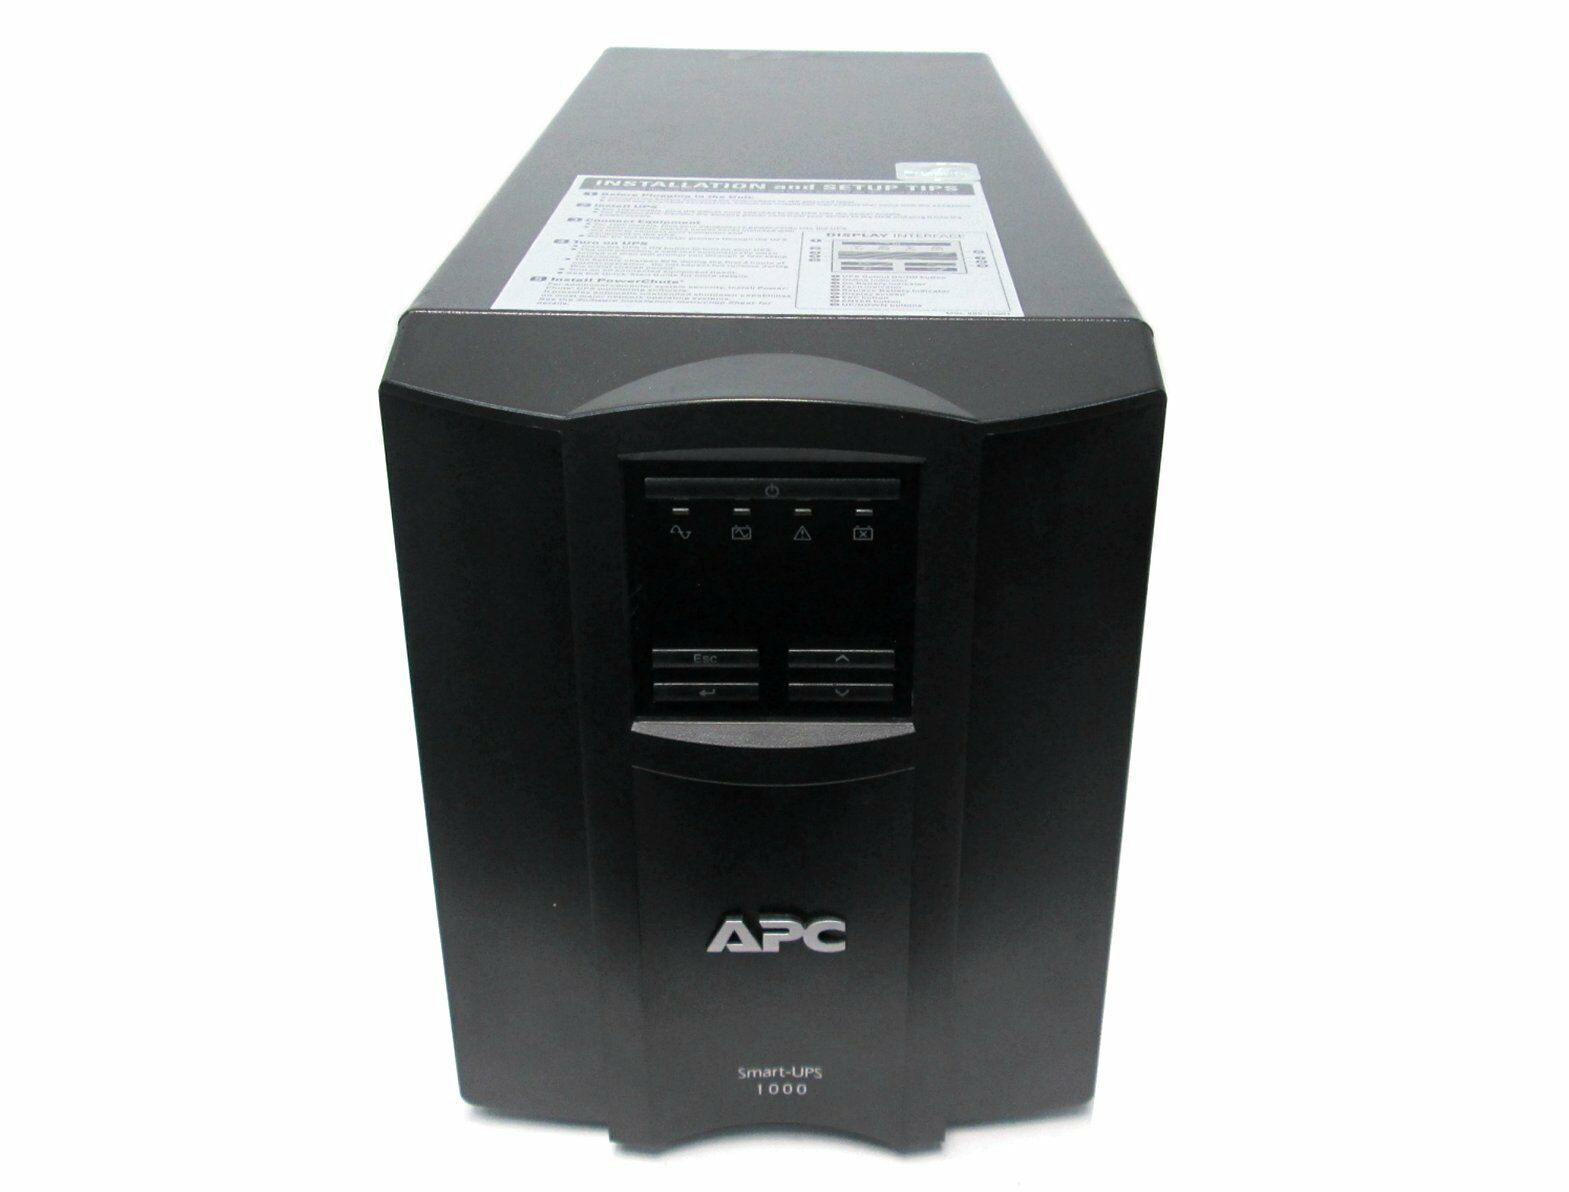 This is an AJC Brand Replacement APC Smart-UPS SMT SMT1000 12V 12Ah UPS Battery